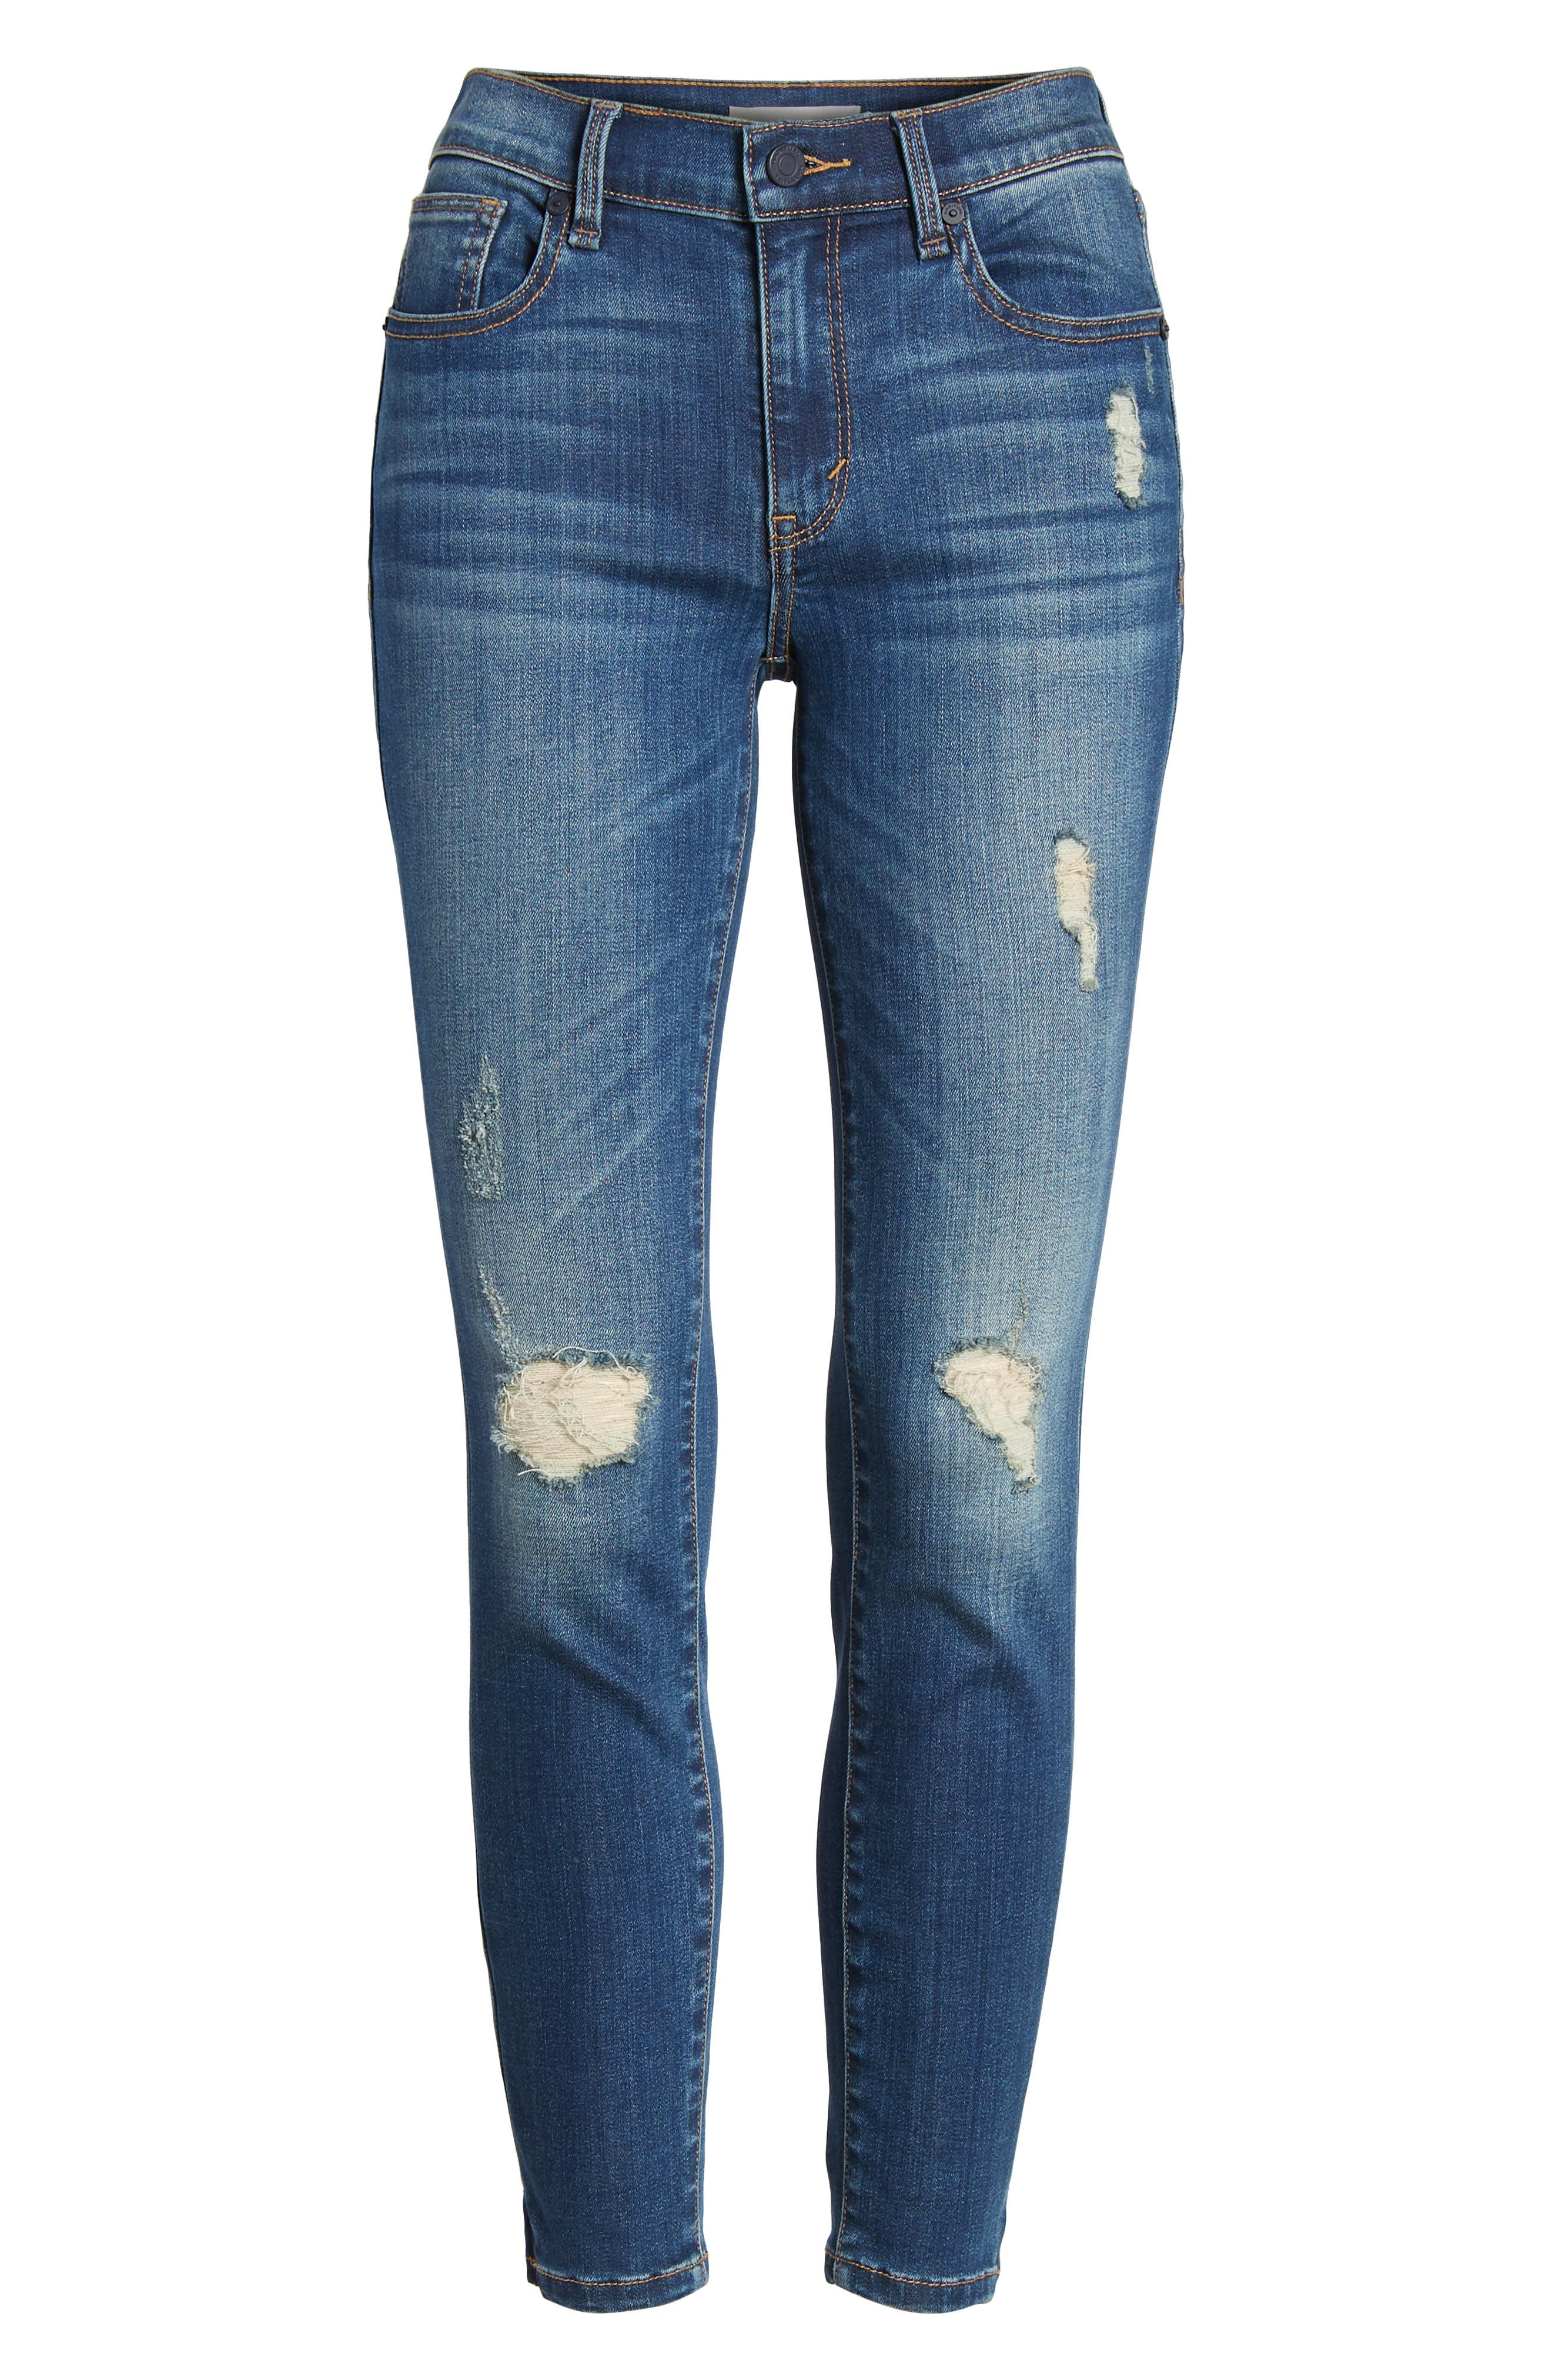 Marina Ankle Skinny Jeans,                             Alternate thumbnail 7, color,                             Basswood